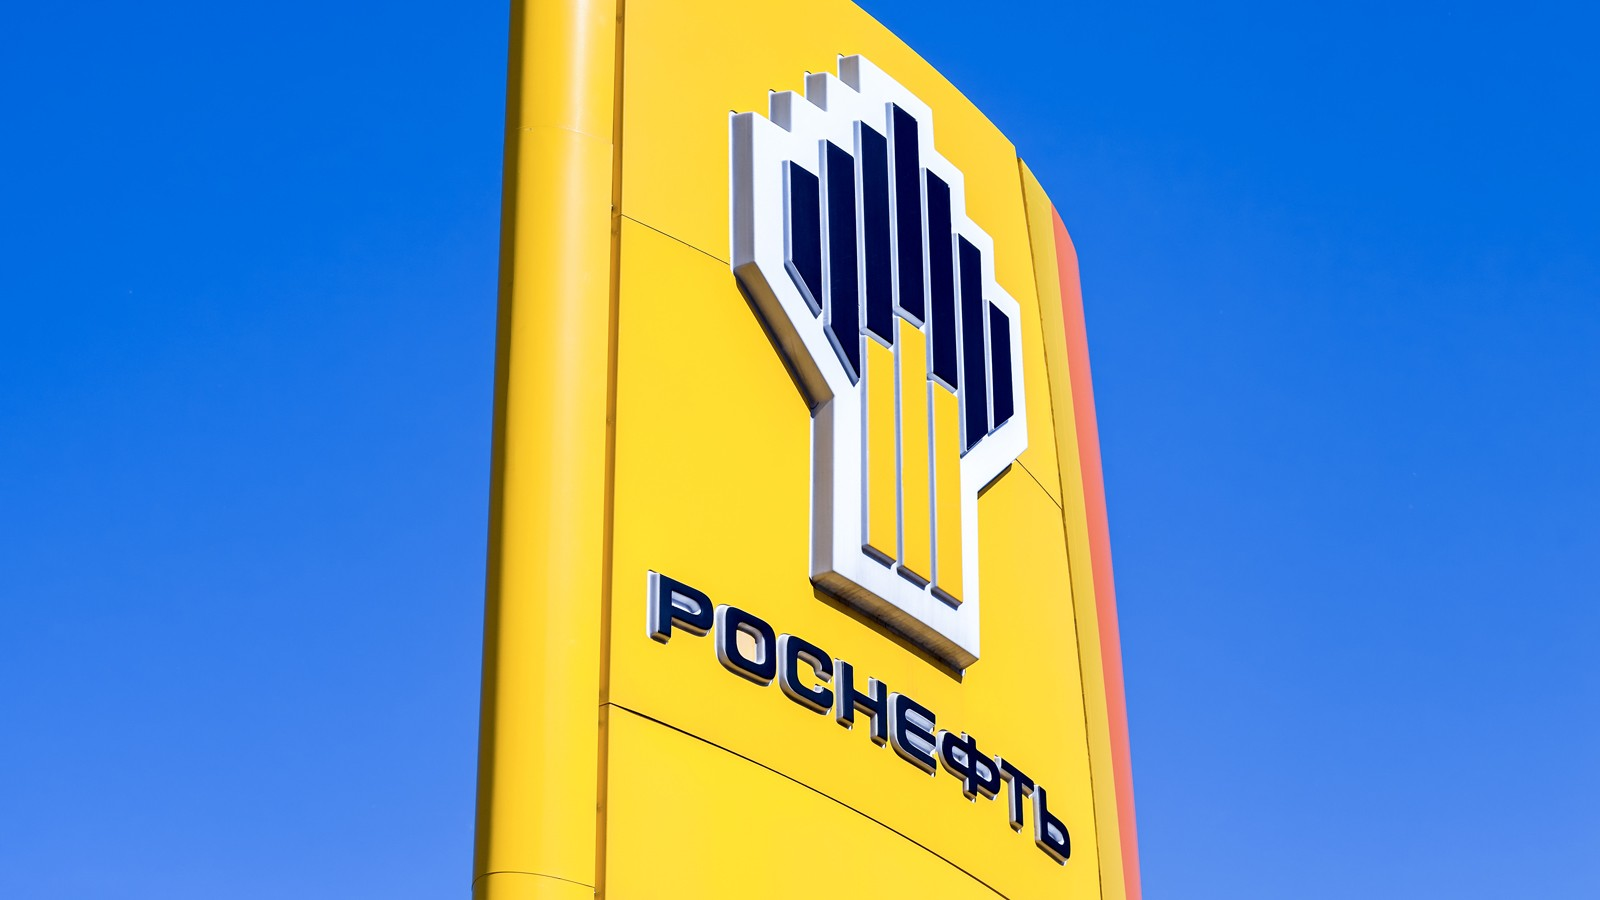 The emblem of the oil company Rosneft against the blue sky background